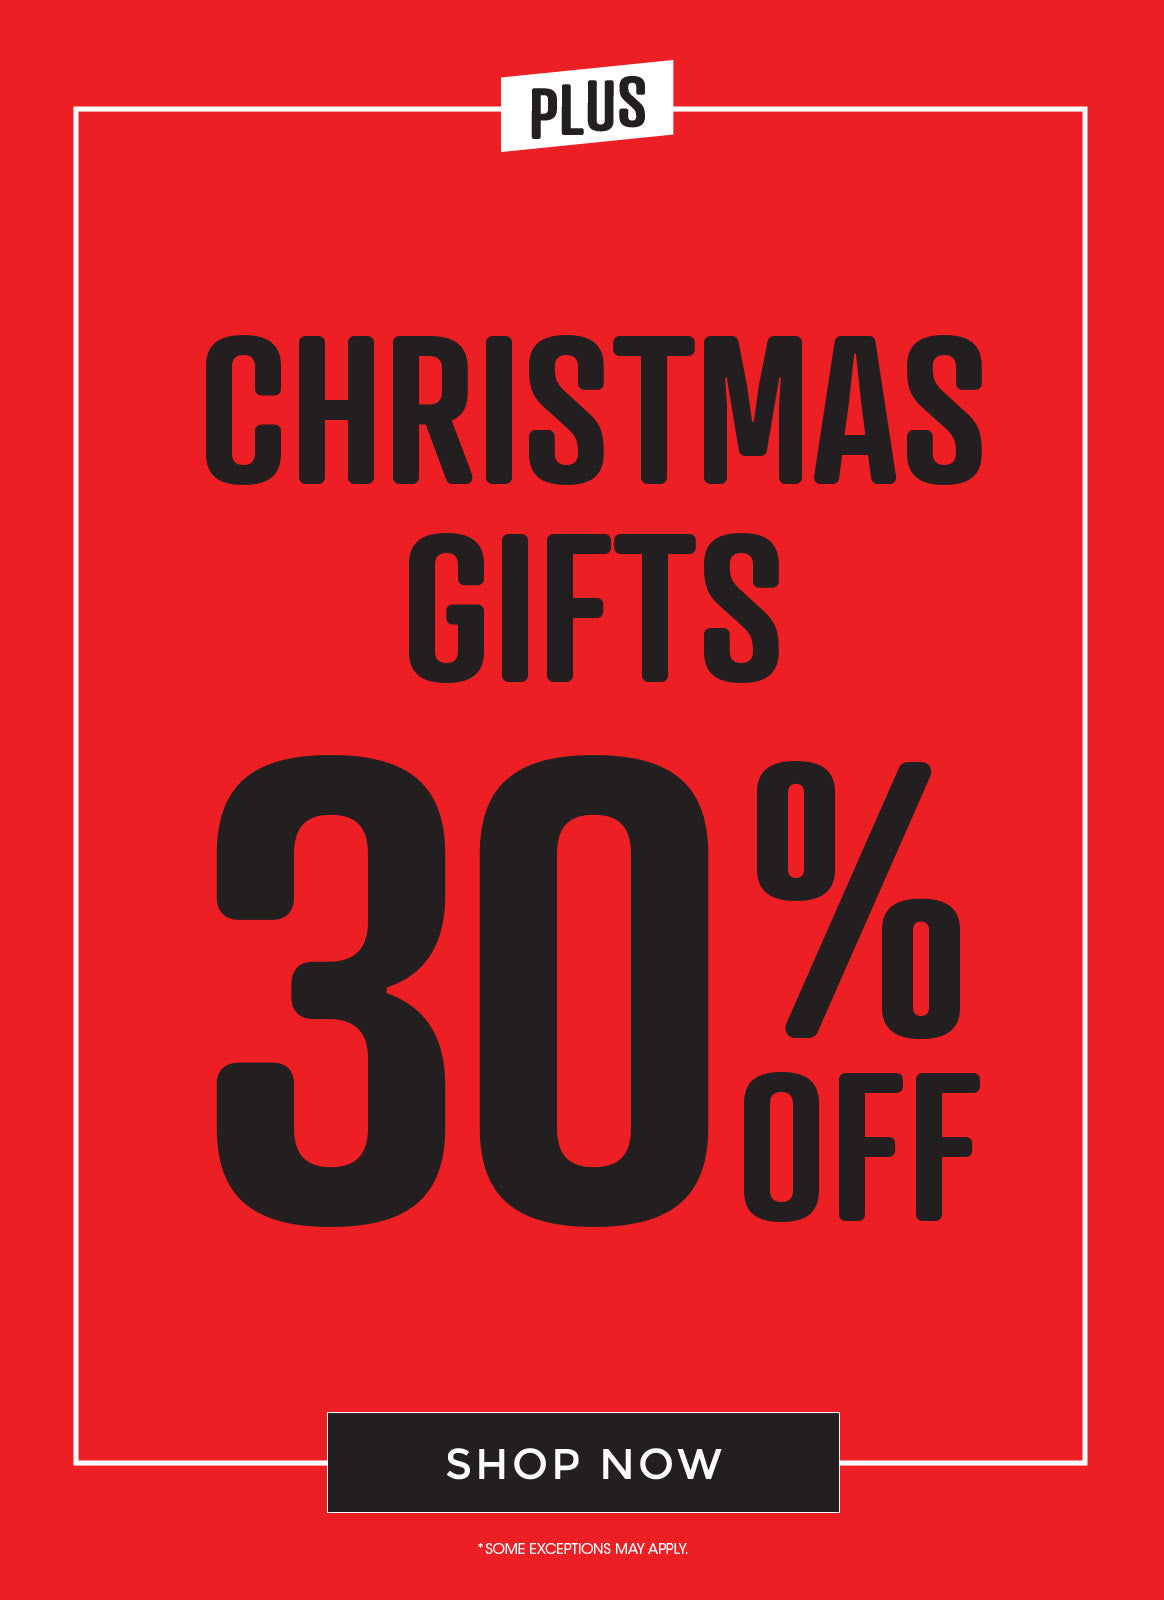 Plus Christmas Gifts 30% Off - Shop Now